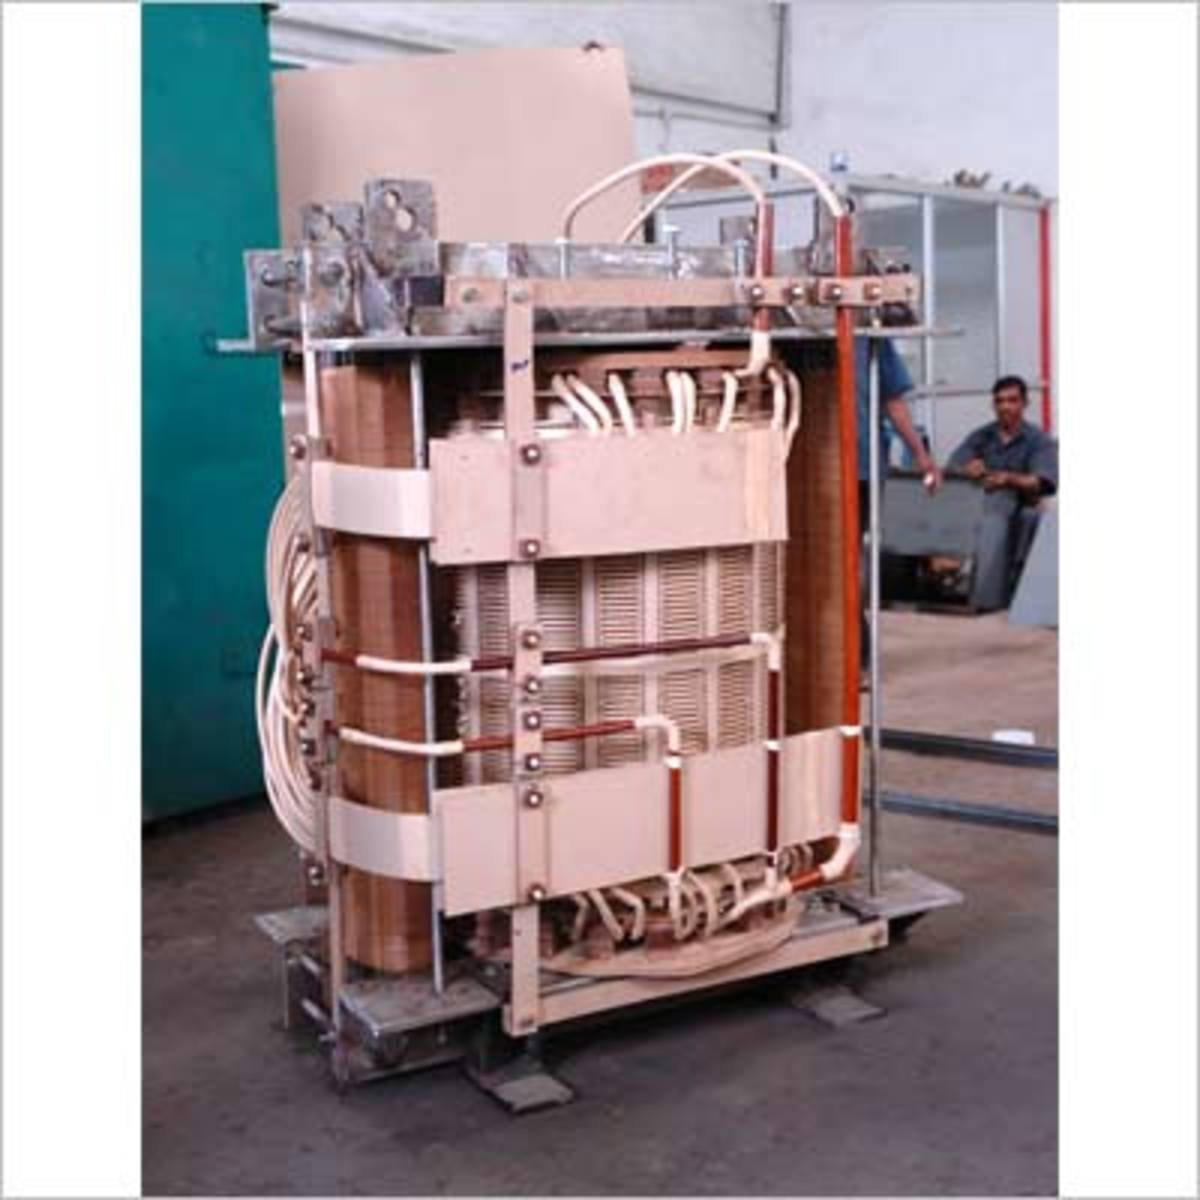 Cooling of Transformers | Owlcation